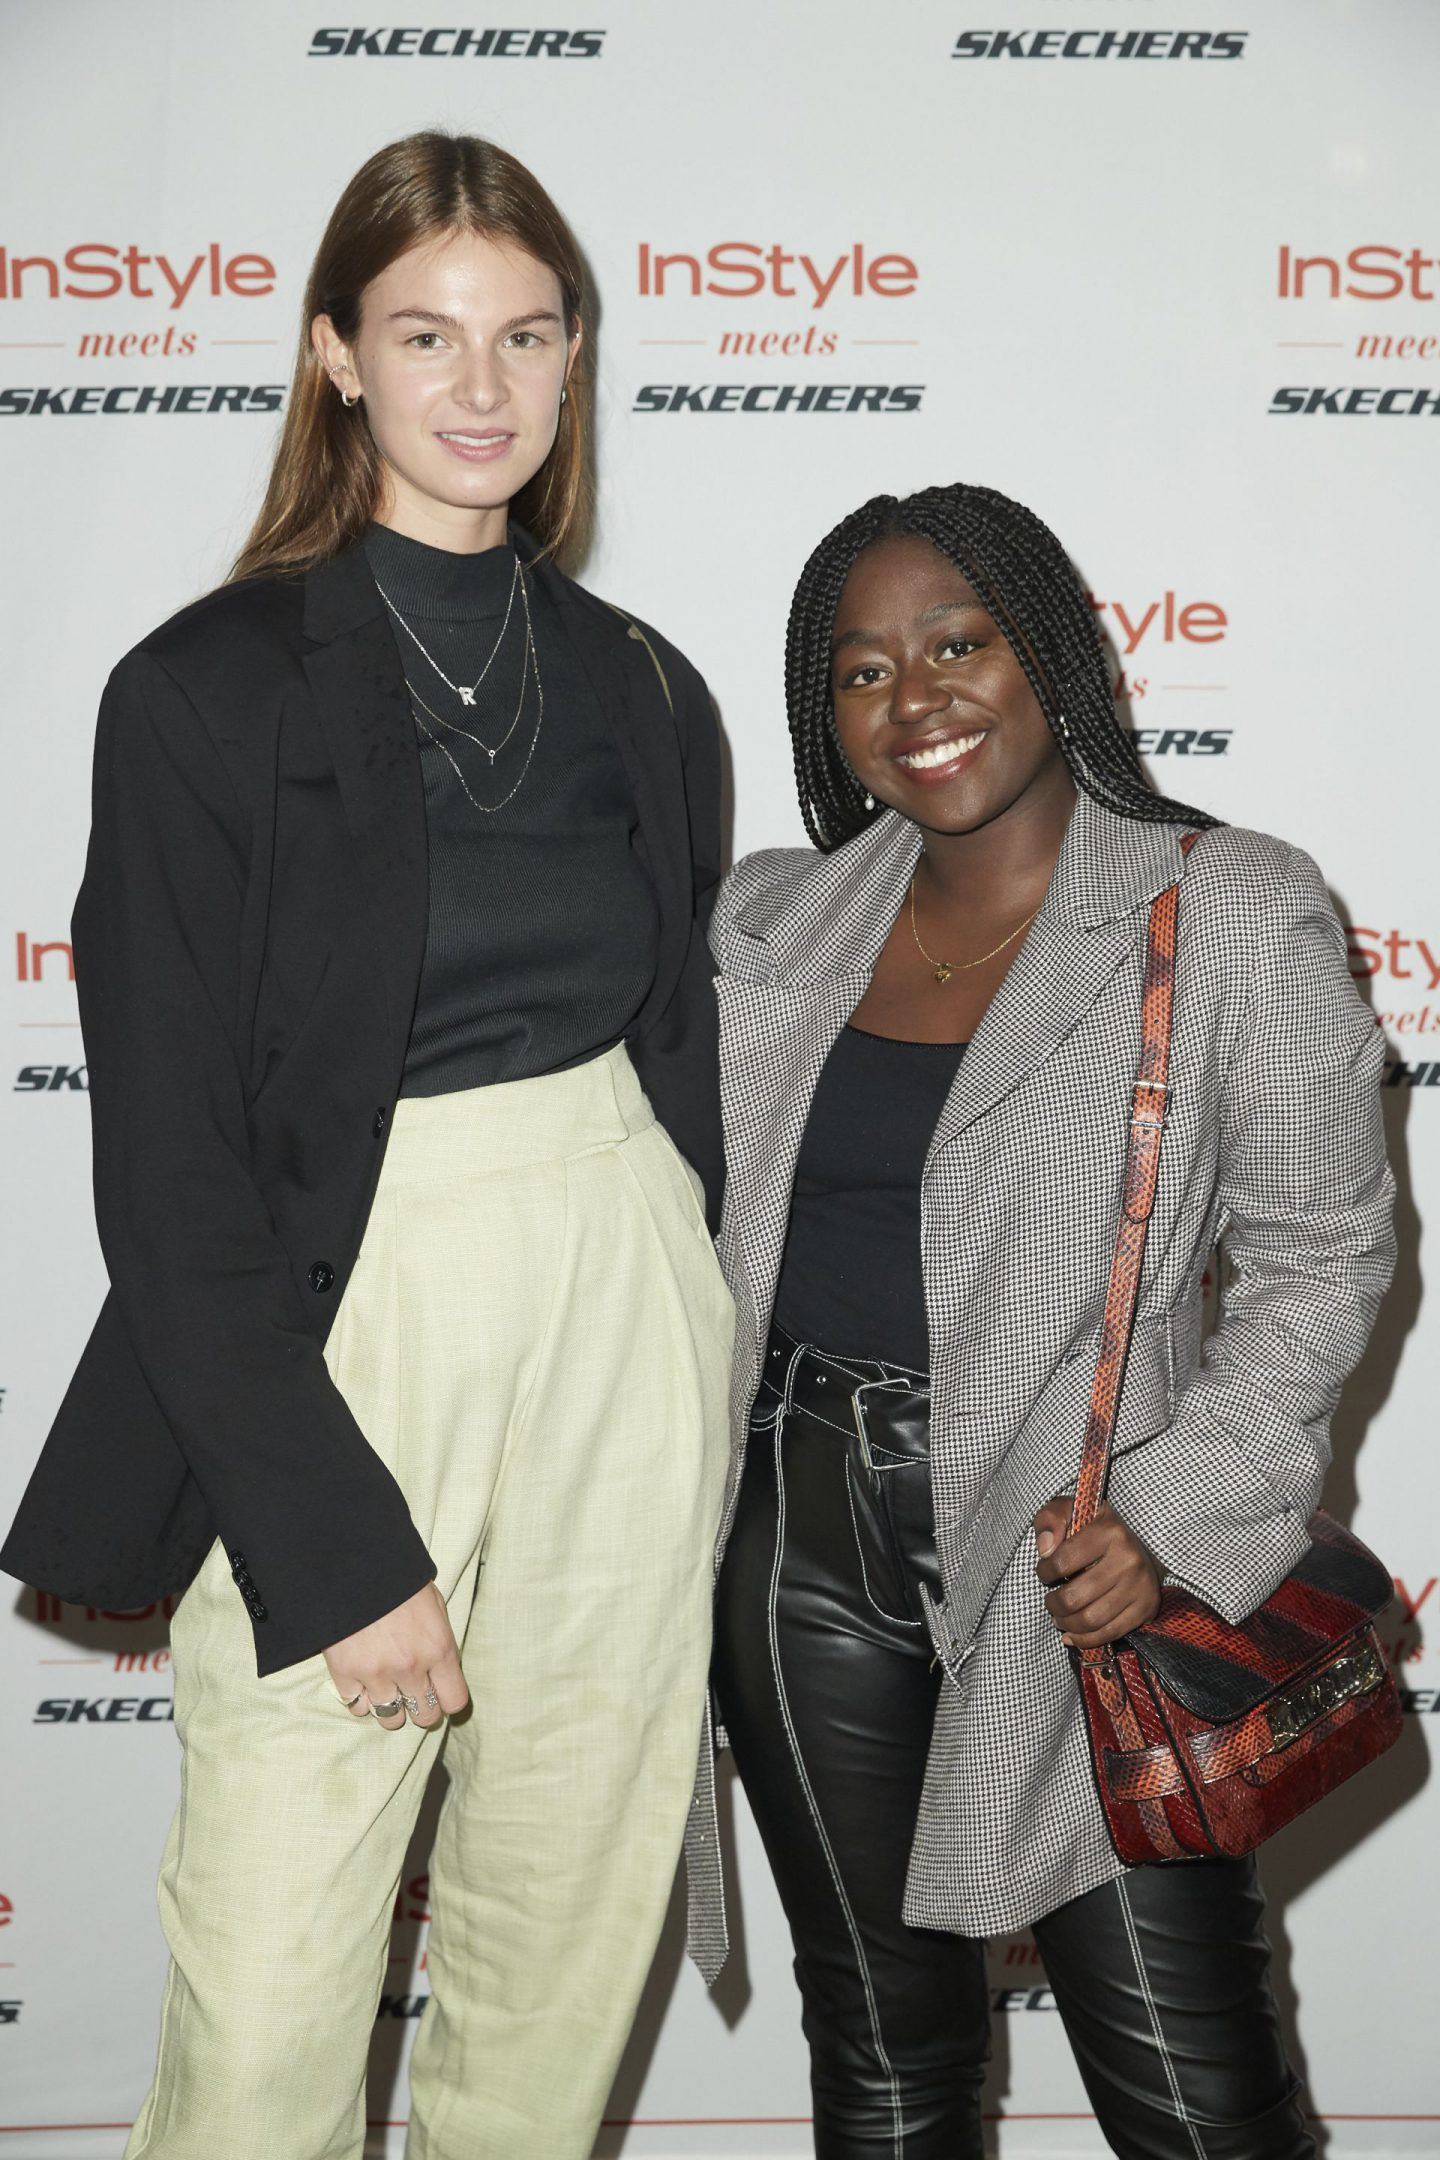 Instyle meets Skechers Jacqueline Zelwis und Lois Opoku